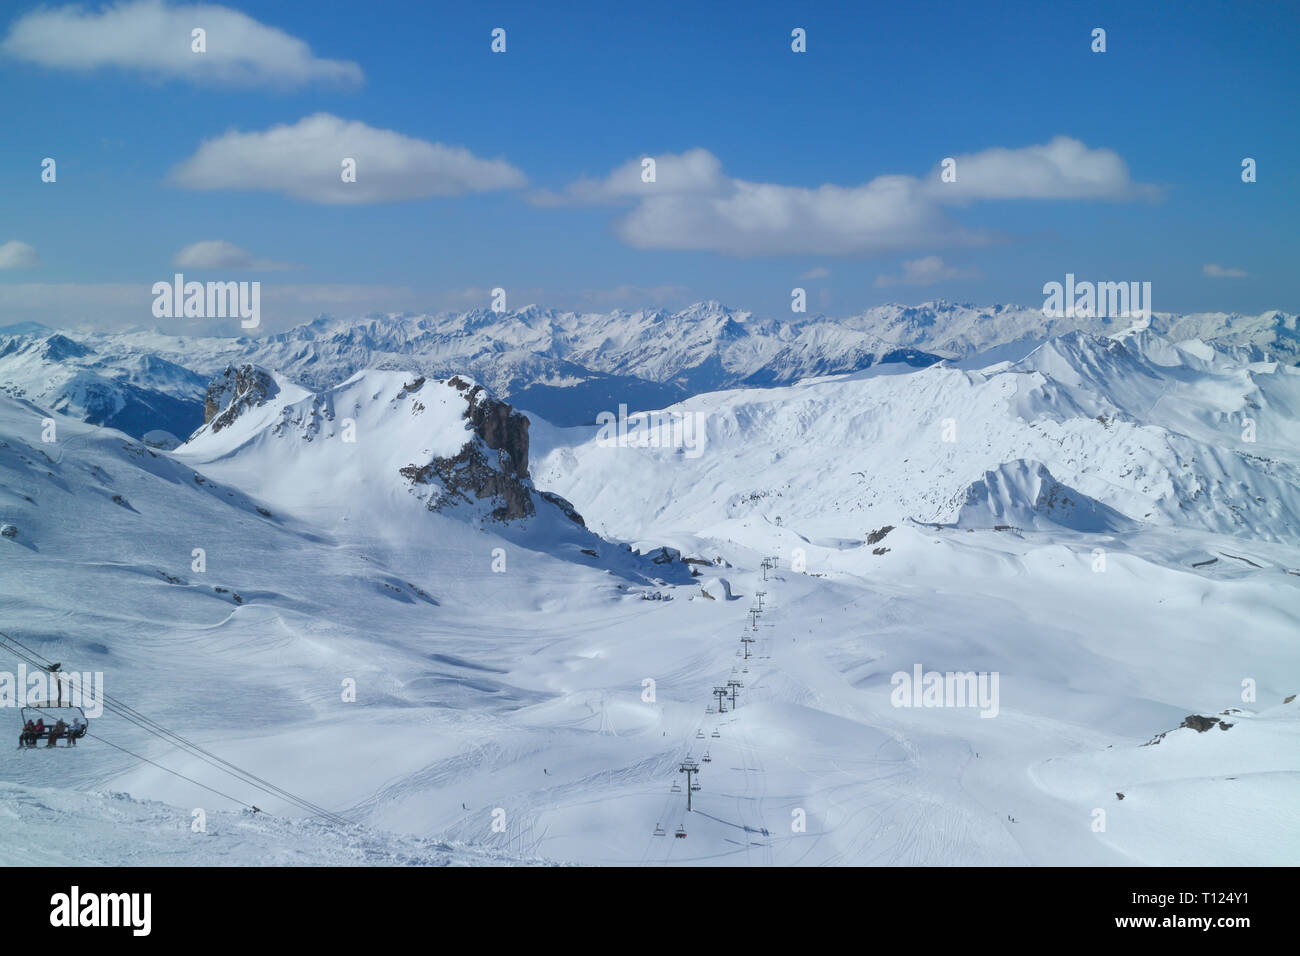 Alpine snowy peaks panoramic view with chair lifts, downhill ski slopes in 3 Valleys winter sport resort, Alps, France, on a sunny cold day . - Stock Image